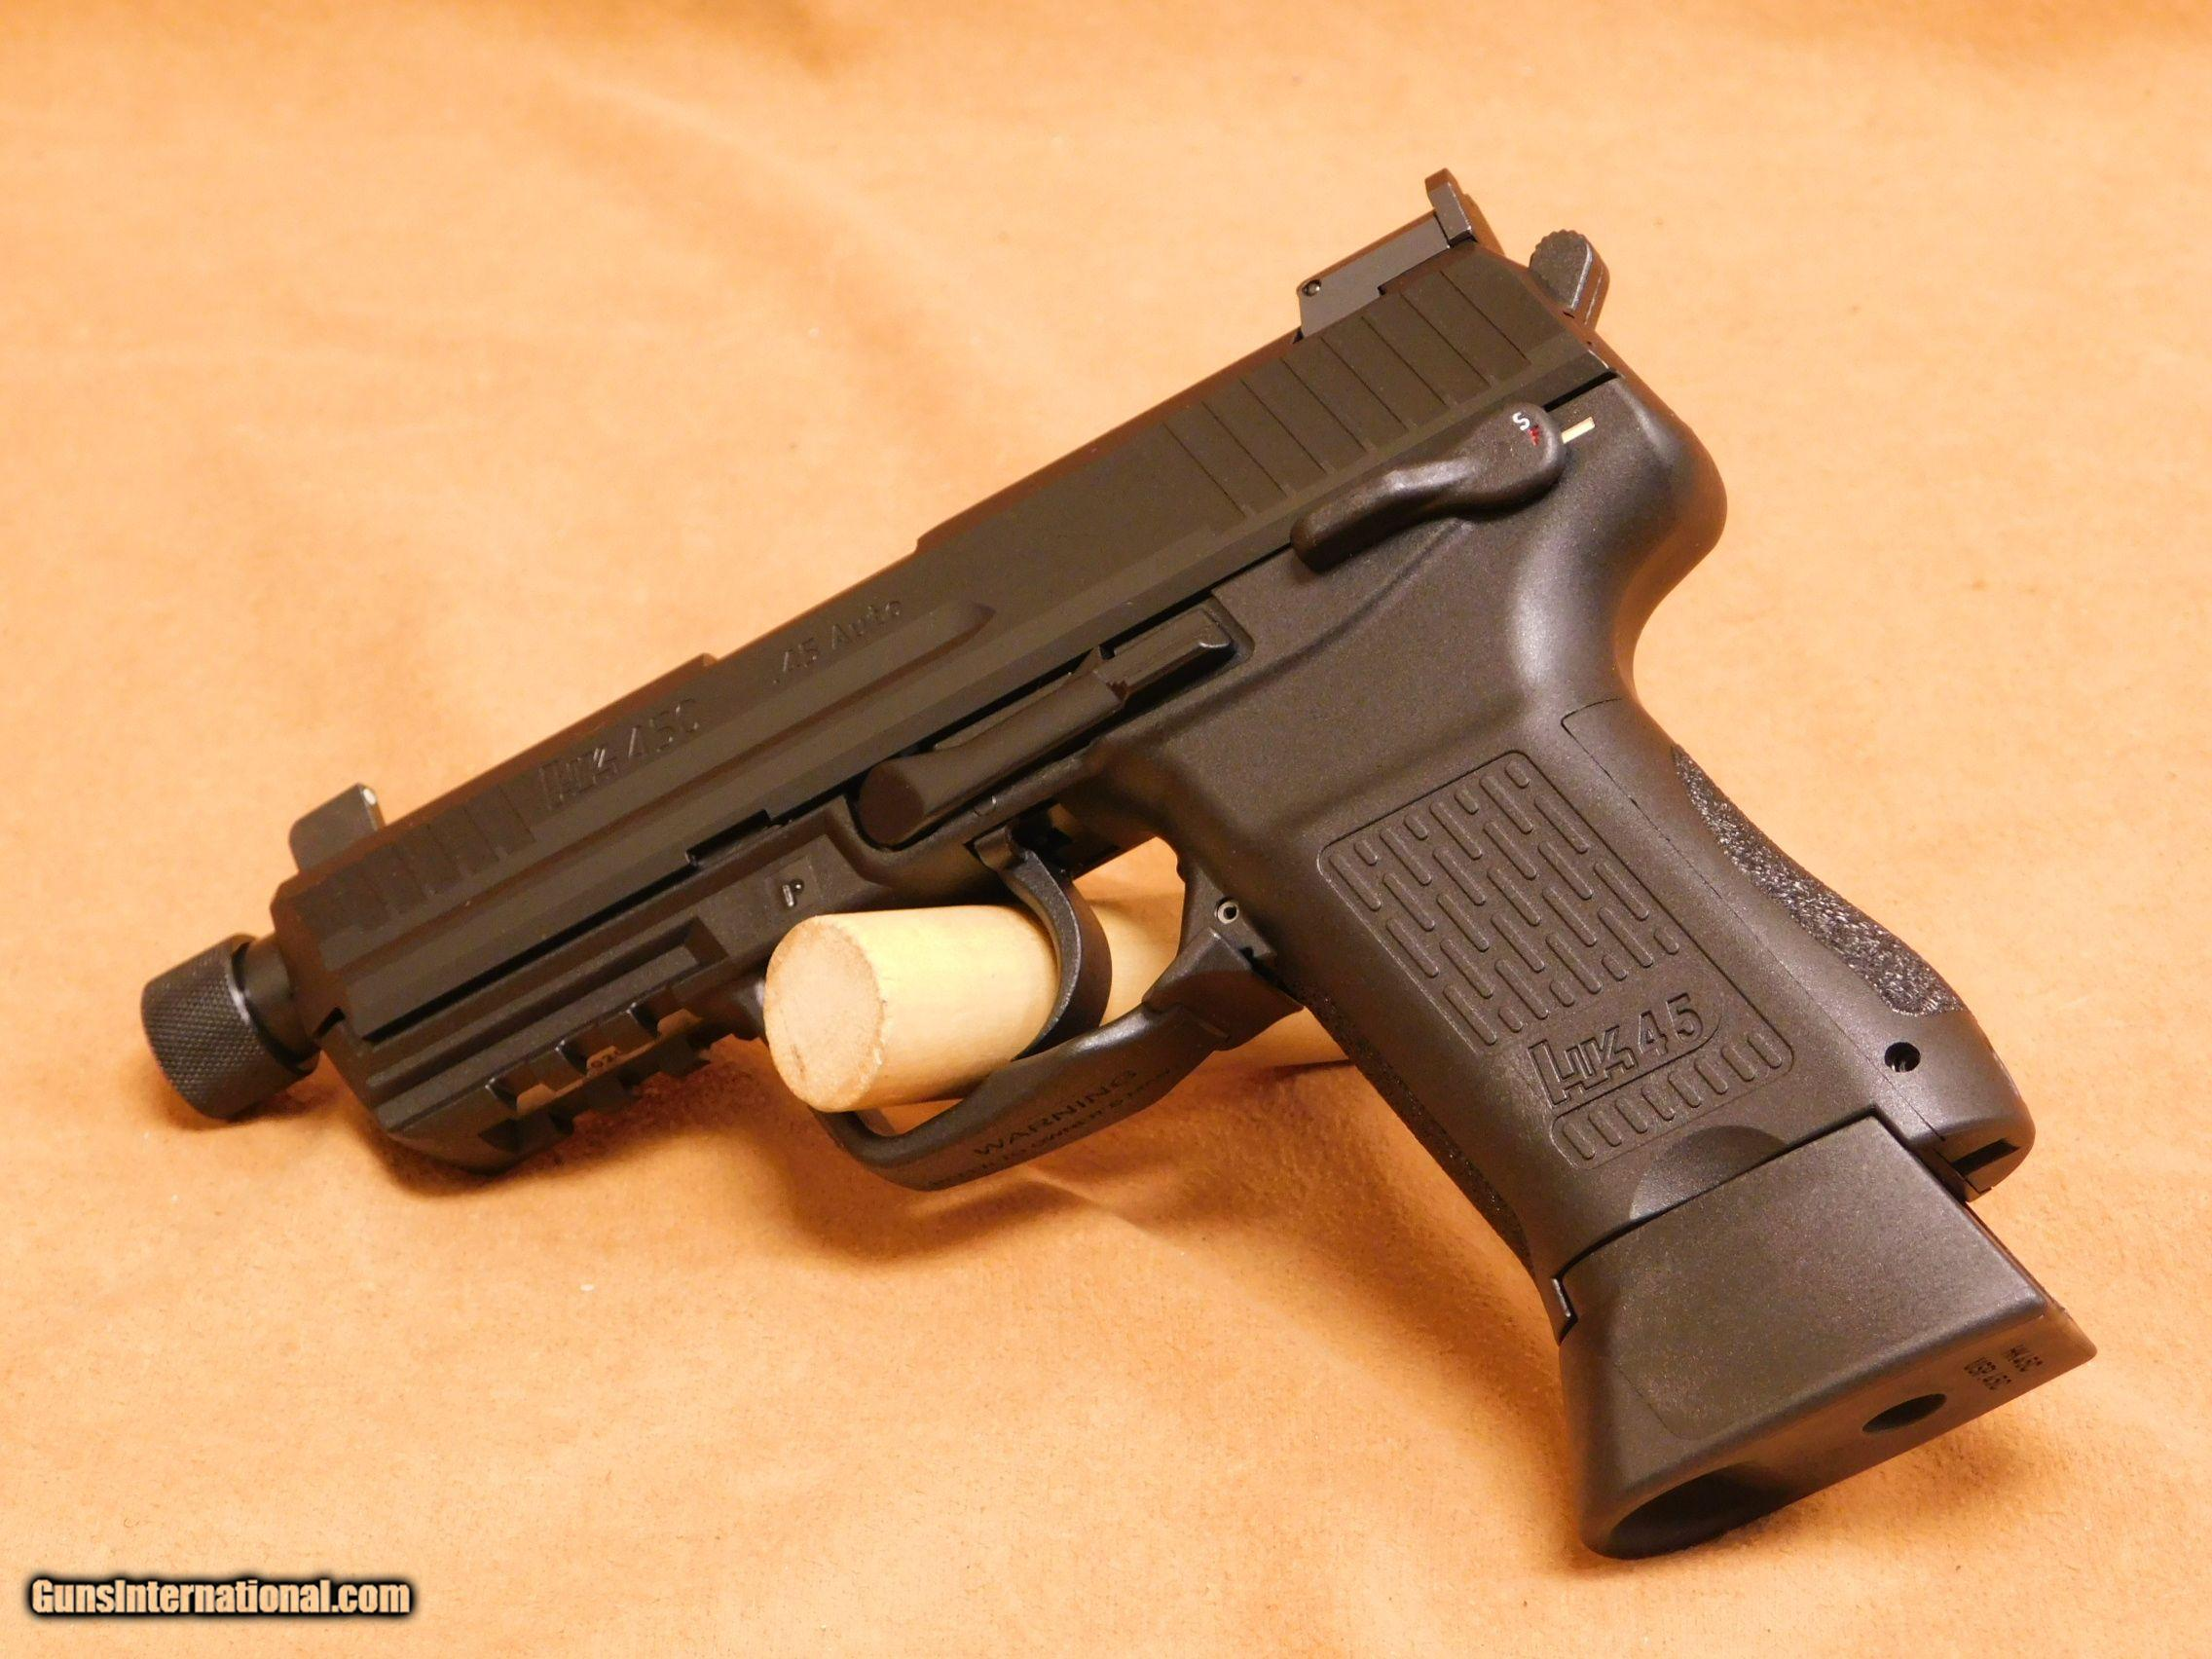 Hk45 compact tactical for sale